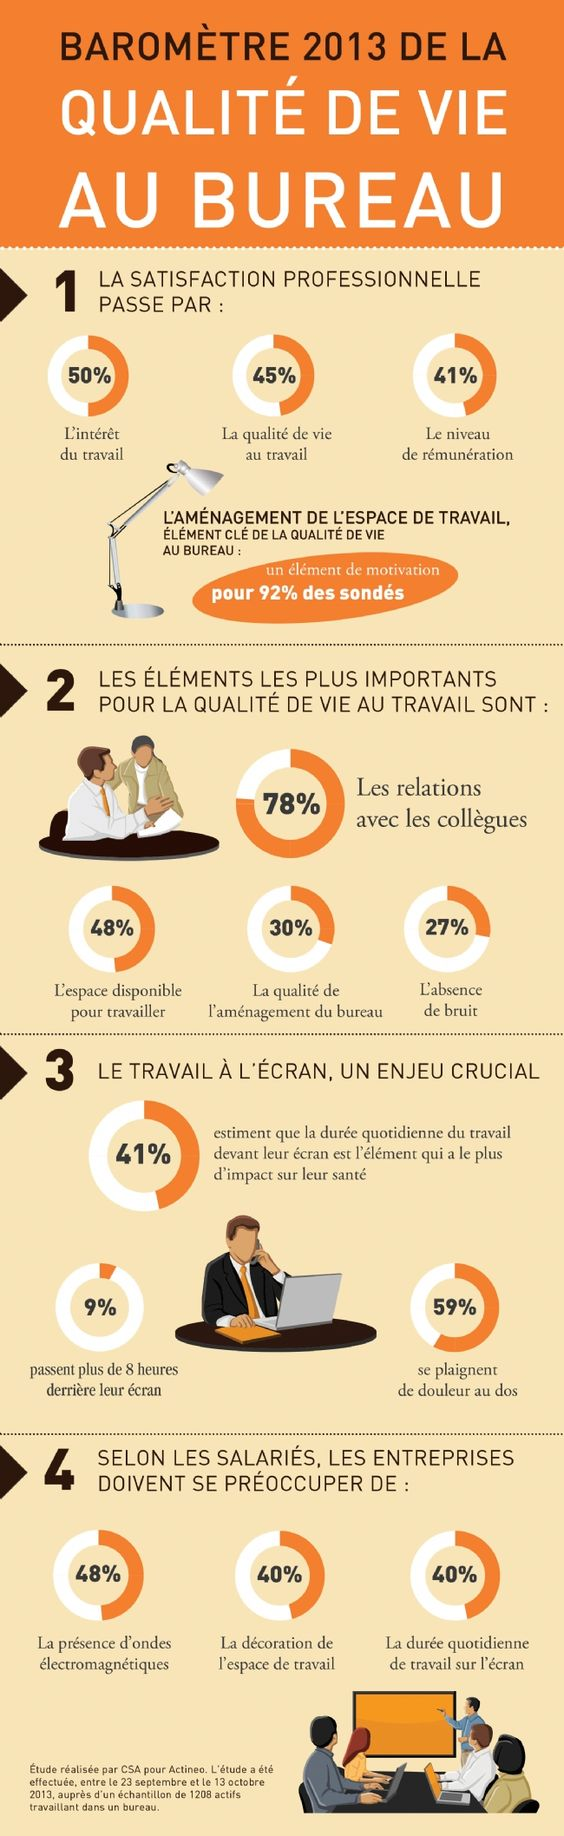 infographie barom tre du bien tre au travail am nagement de l 39 espace est crucial selon 92. Black Bedroom Furniture Sets. Home Design Ideas